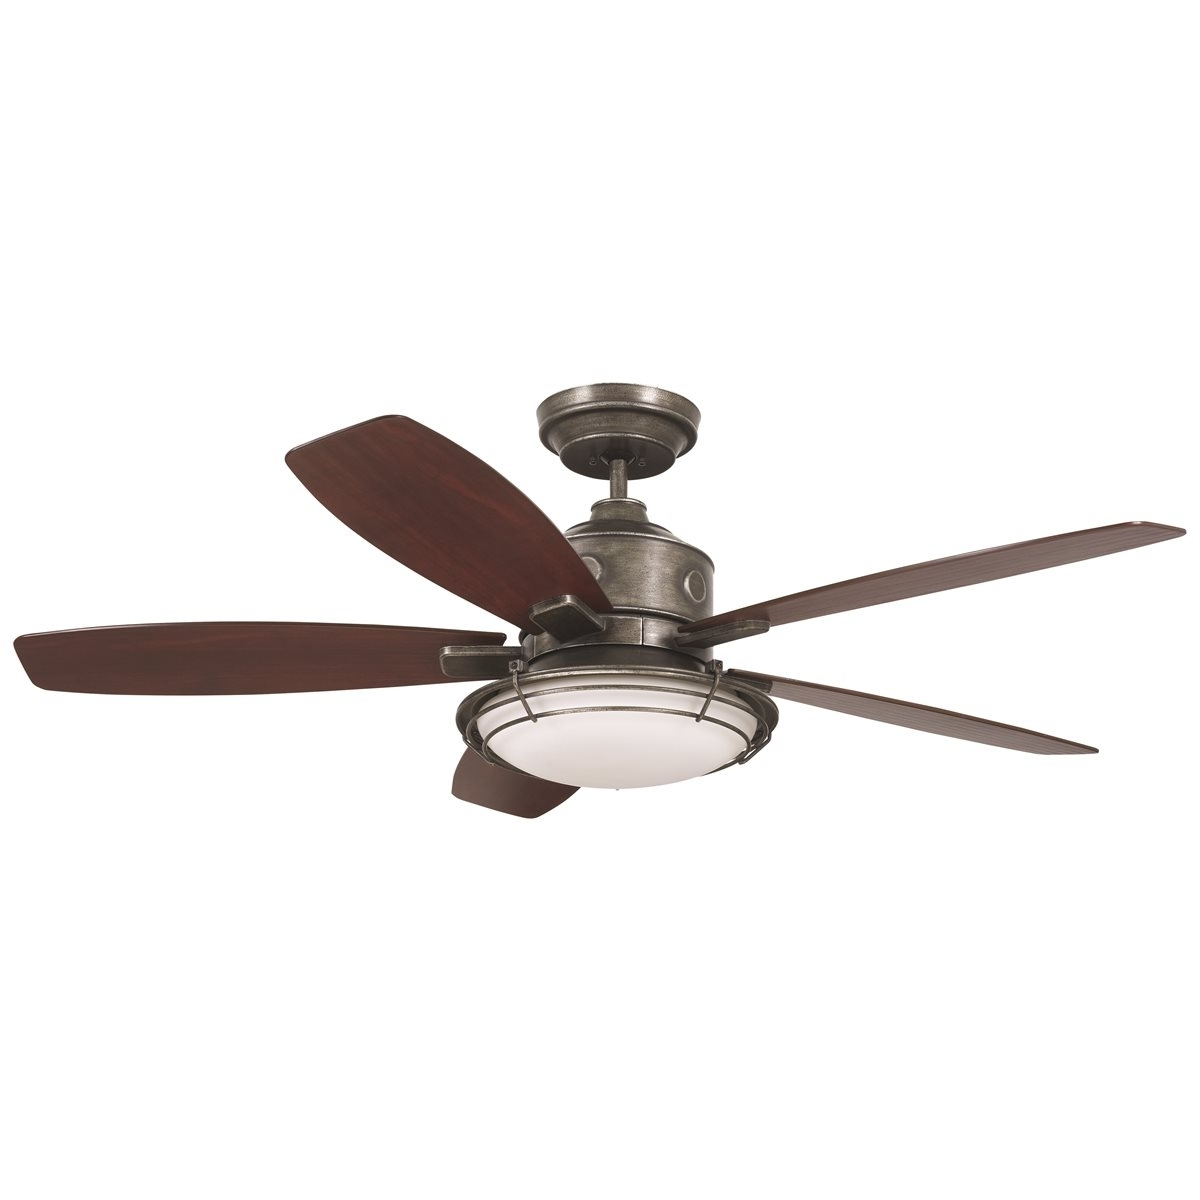 Emerson Rockpointe Outdoor Ceiling Fan – Vintage Steel One Each With Regard To Famous Wet Rated Emerson Outdoor Ceiling Fans (View 12 of 20)